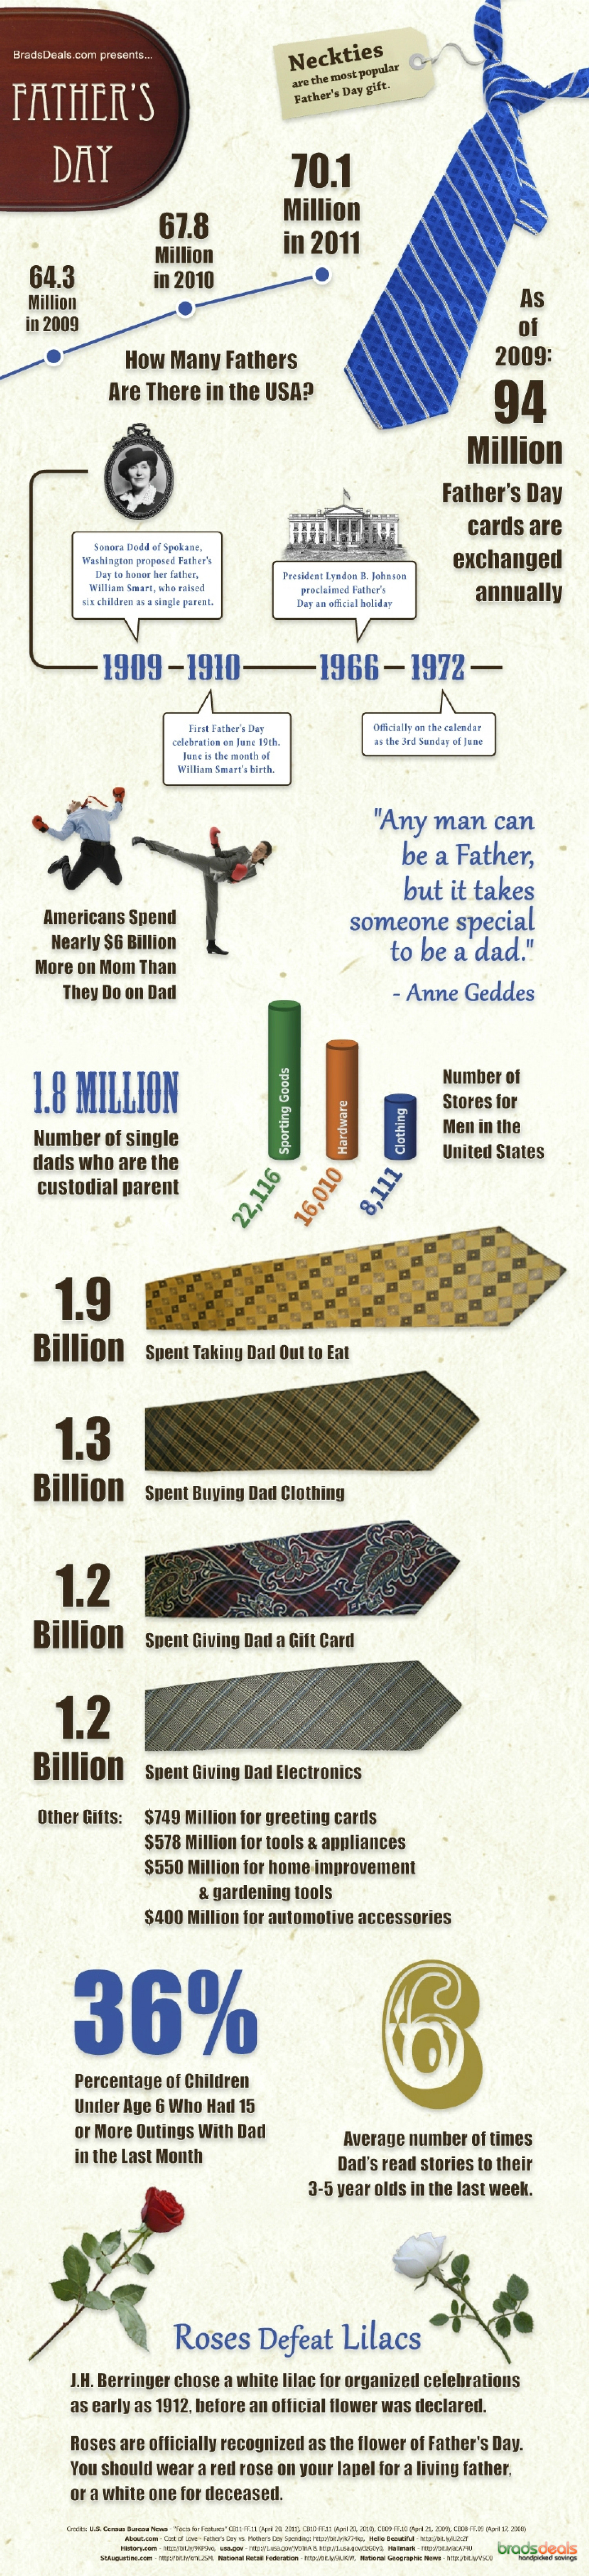 Fun Facts for Father's Day 2011 Infographic